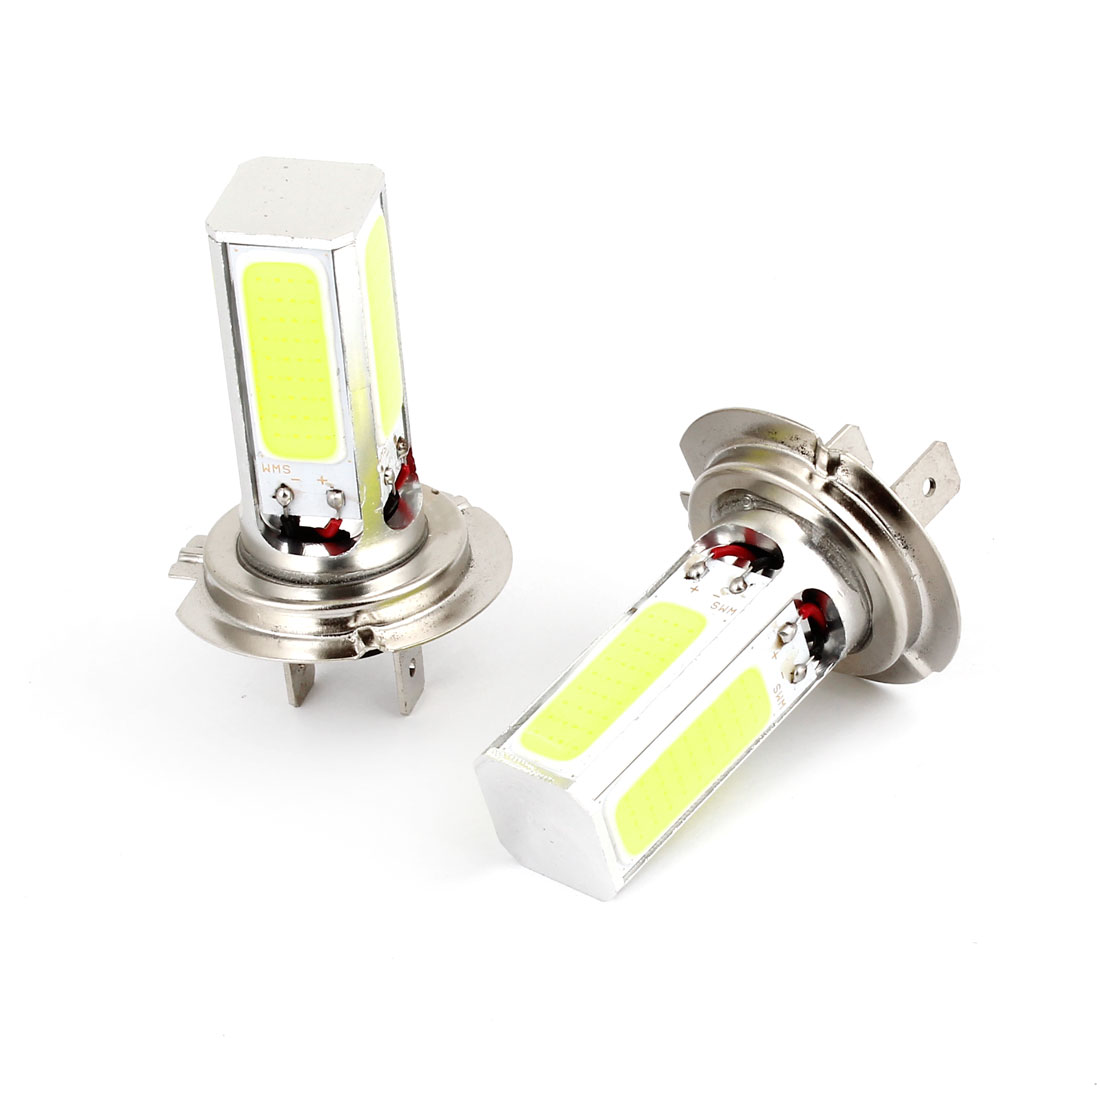 2 Pcs White H7 Socket COB LED Fog Lamp DRL Daytime Running Light Bulb 12V-24V